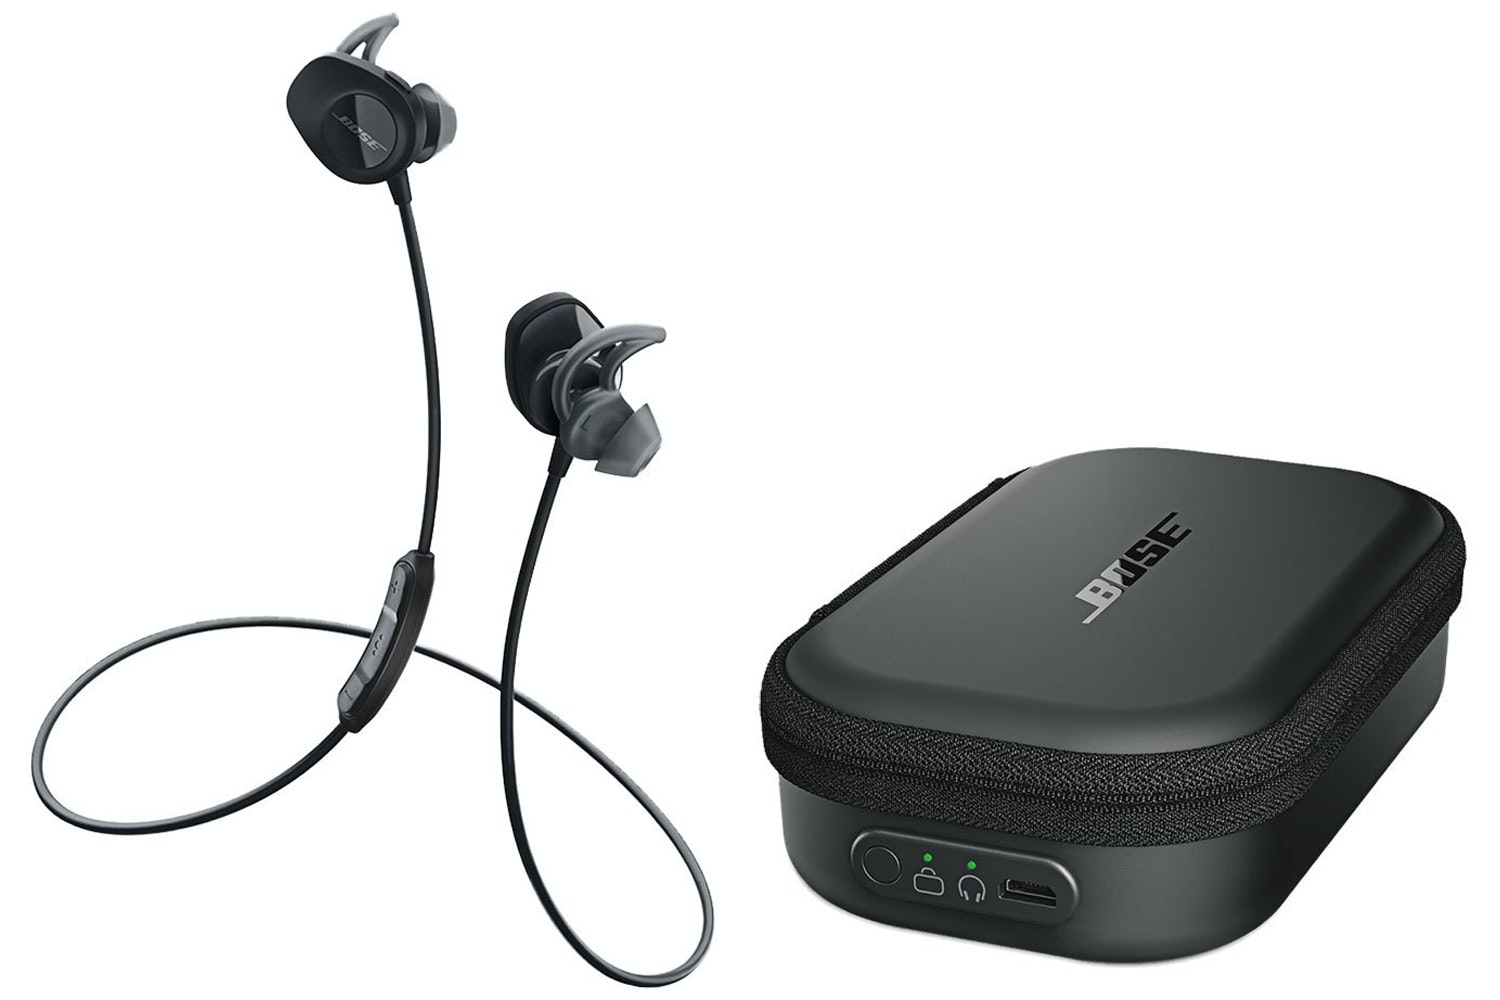 Bose Soundsport Wireless In-Ear Headphones and Charging Case | Black